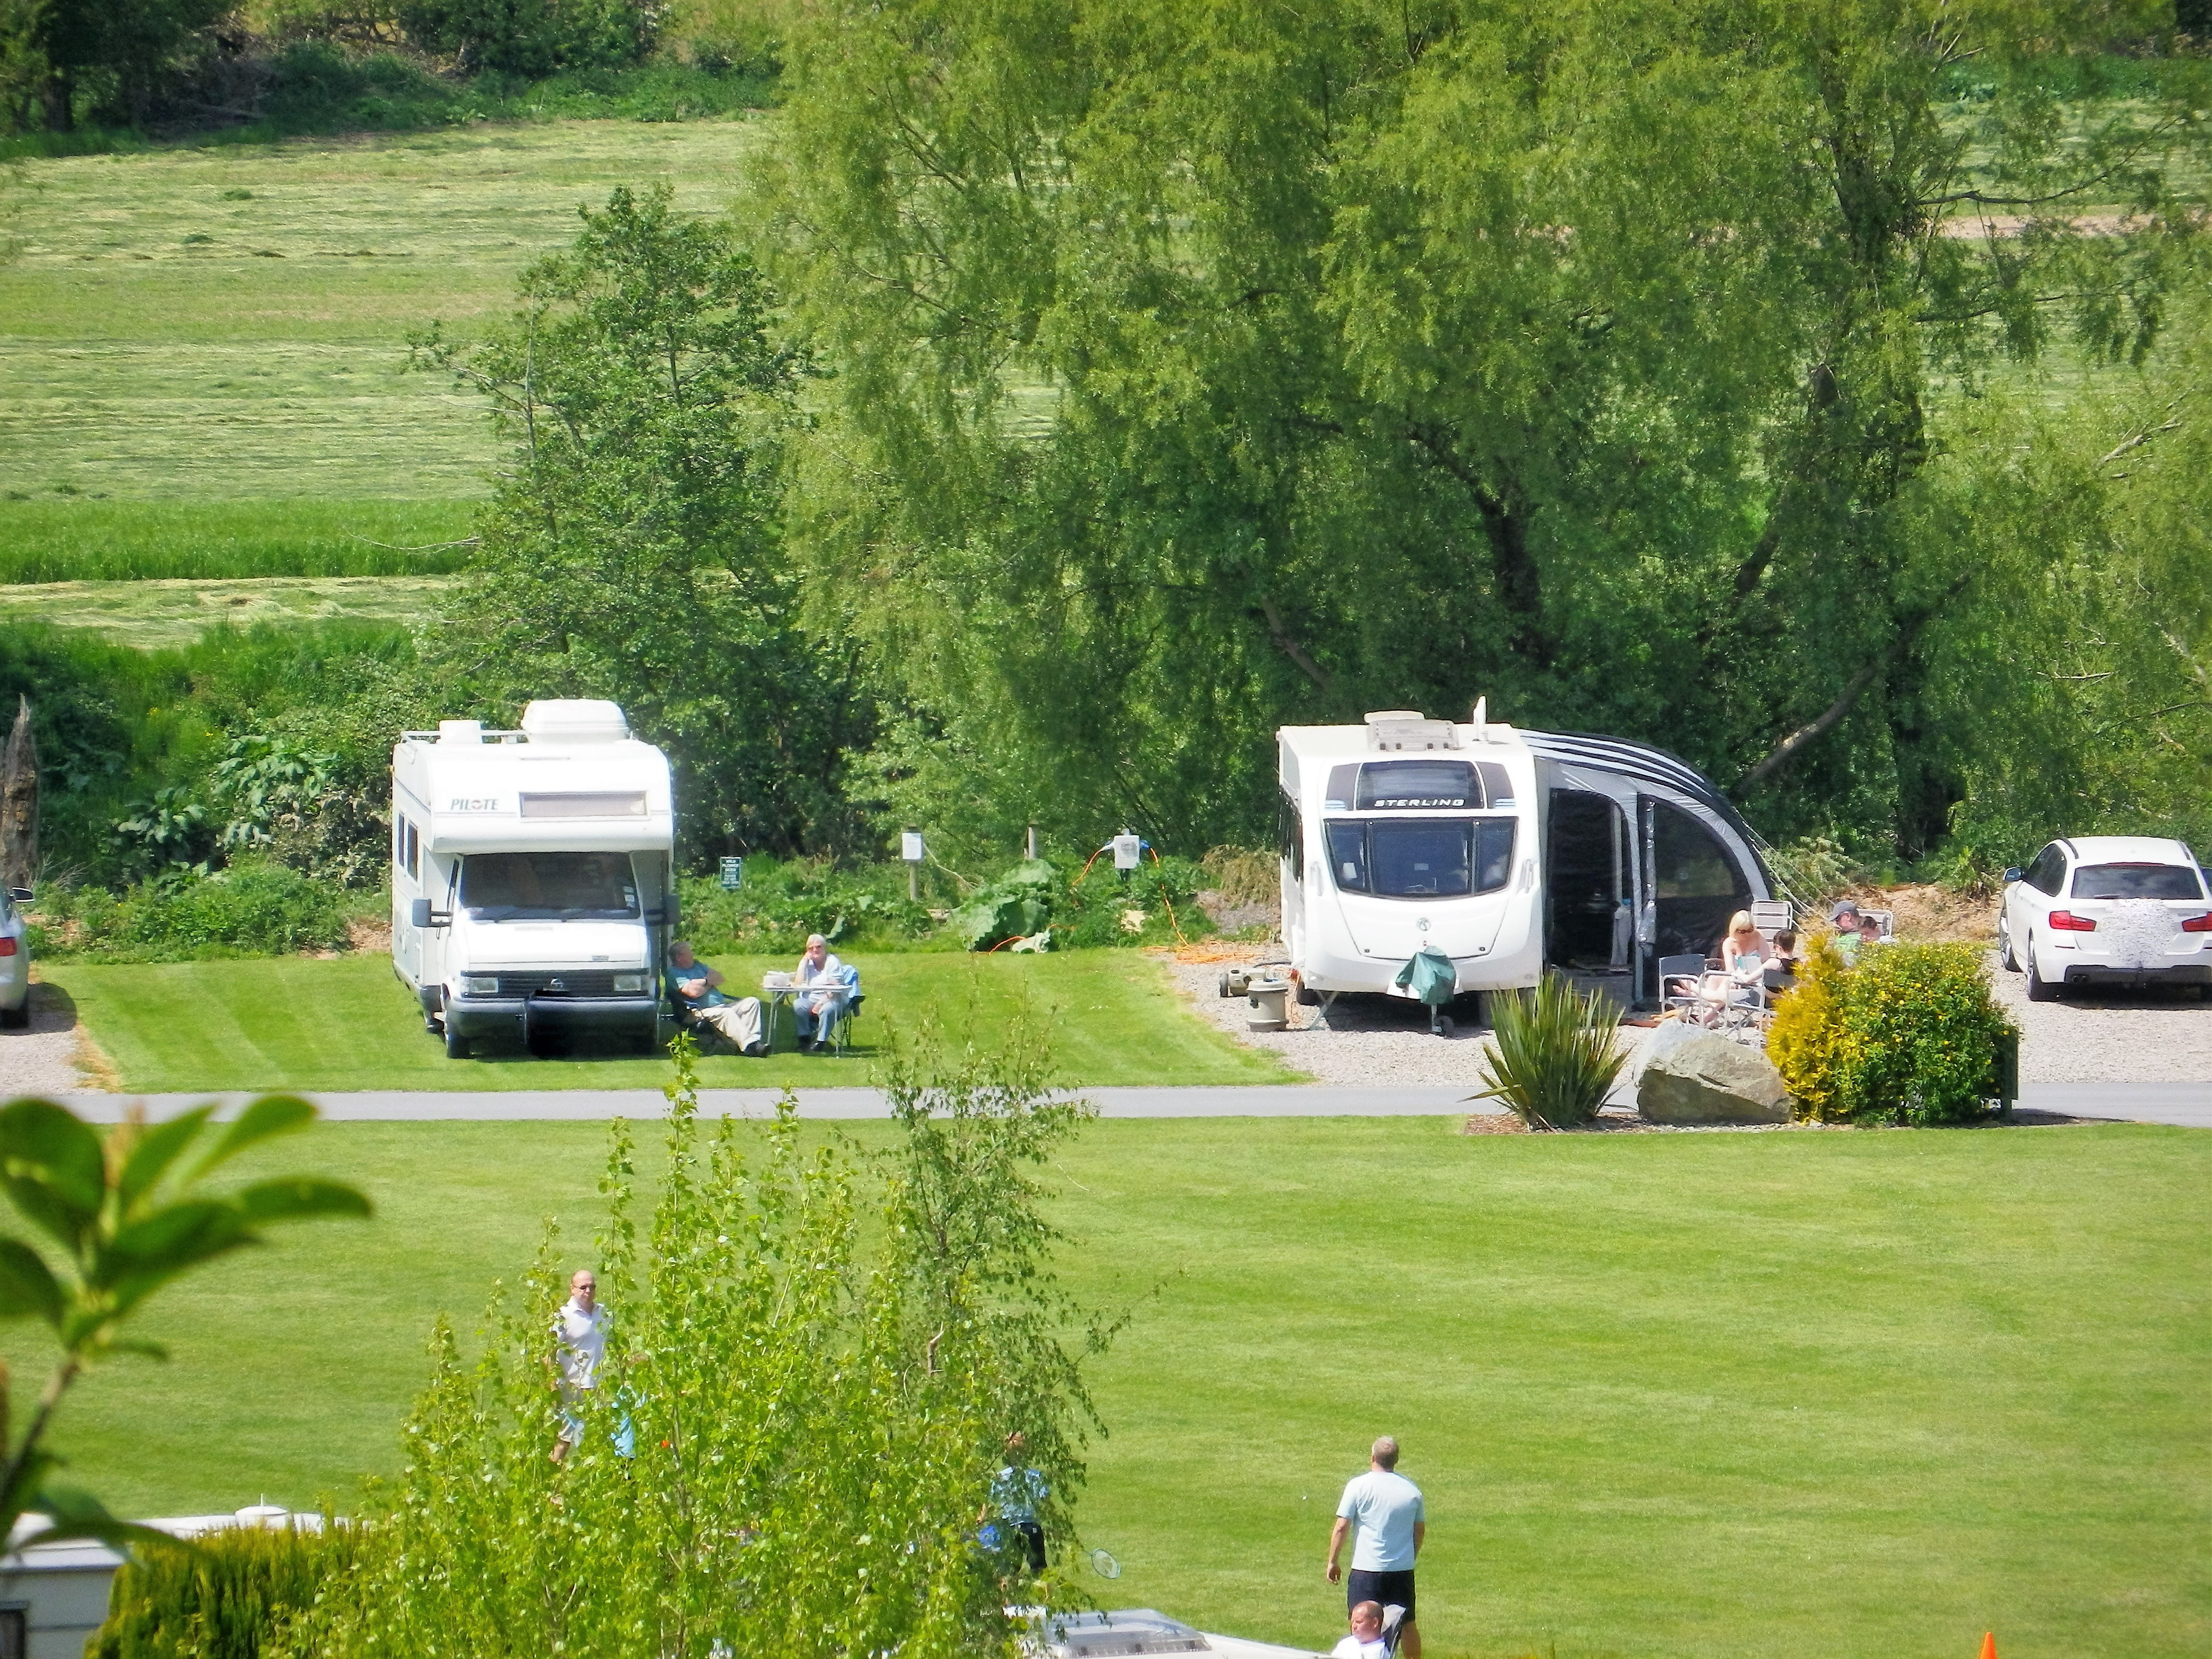 Simple Firstly The Site Is Small But Perfectly Formed And Even With All The Caravans Rented  You Can Also Hire Bikes Or Bring Your Own And A Few Meters Down The Road Is A Dirt Track Through A Farm Down To The River Wye For Those Ladies Who Rather